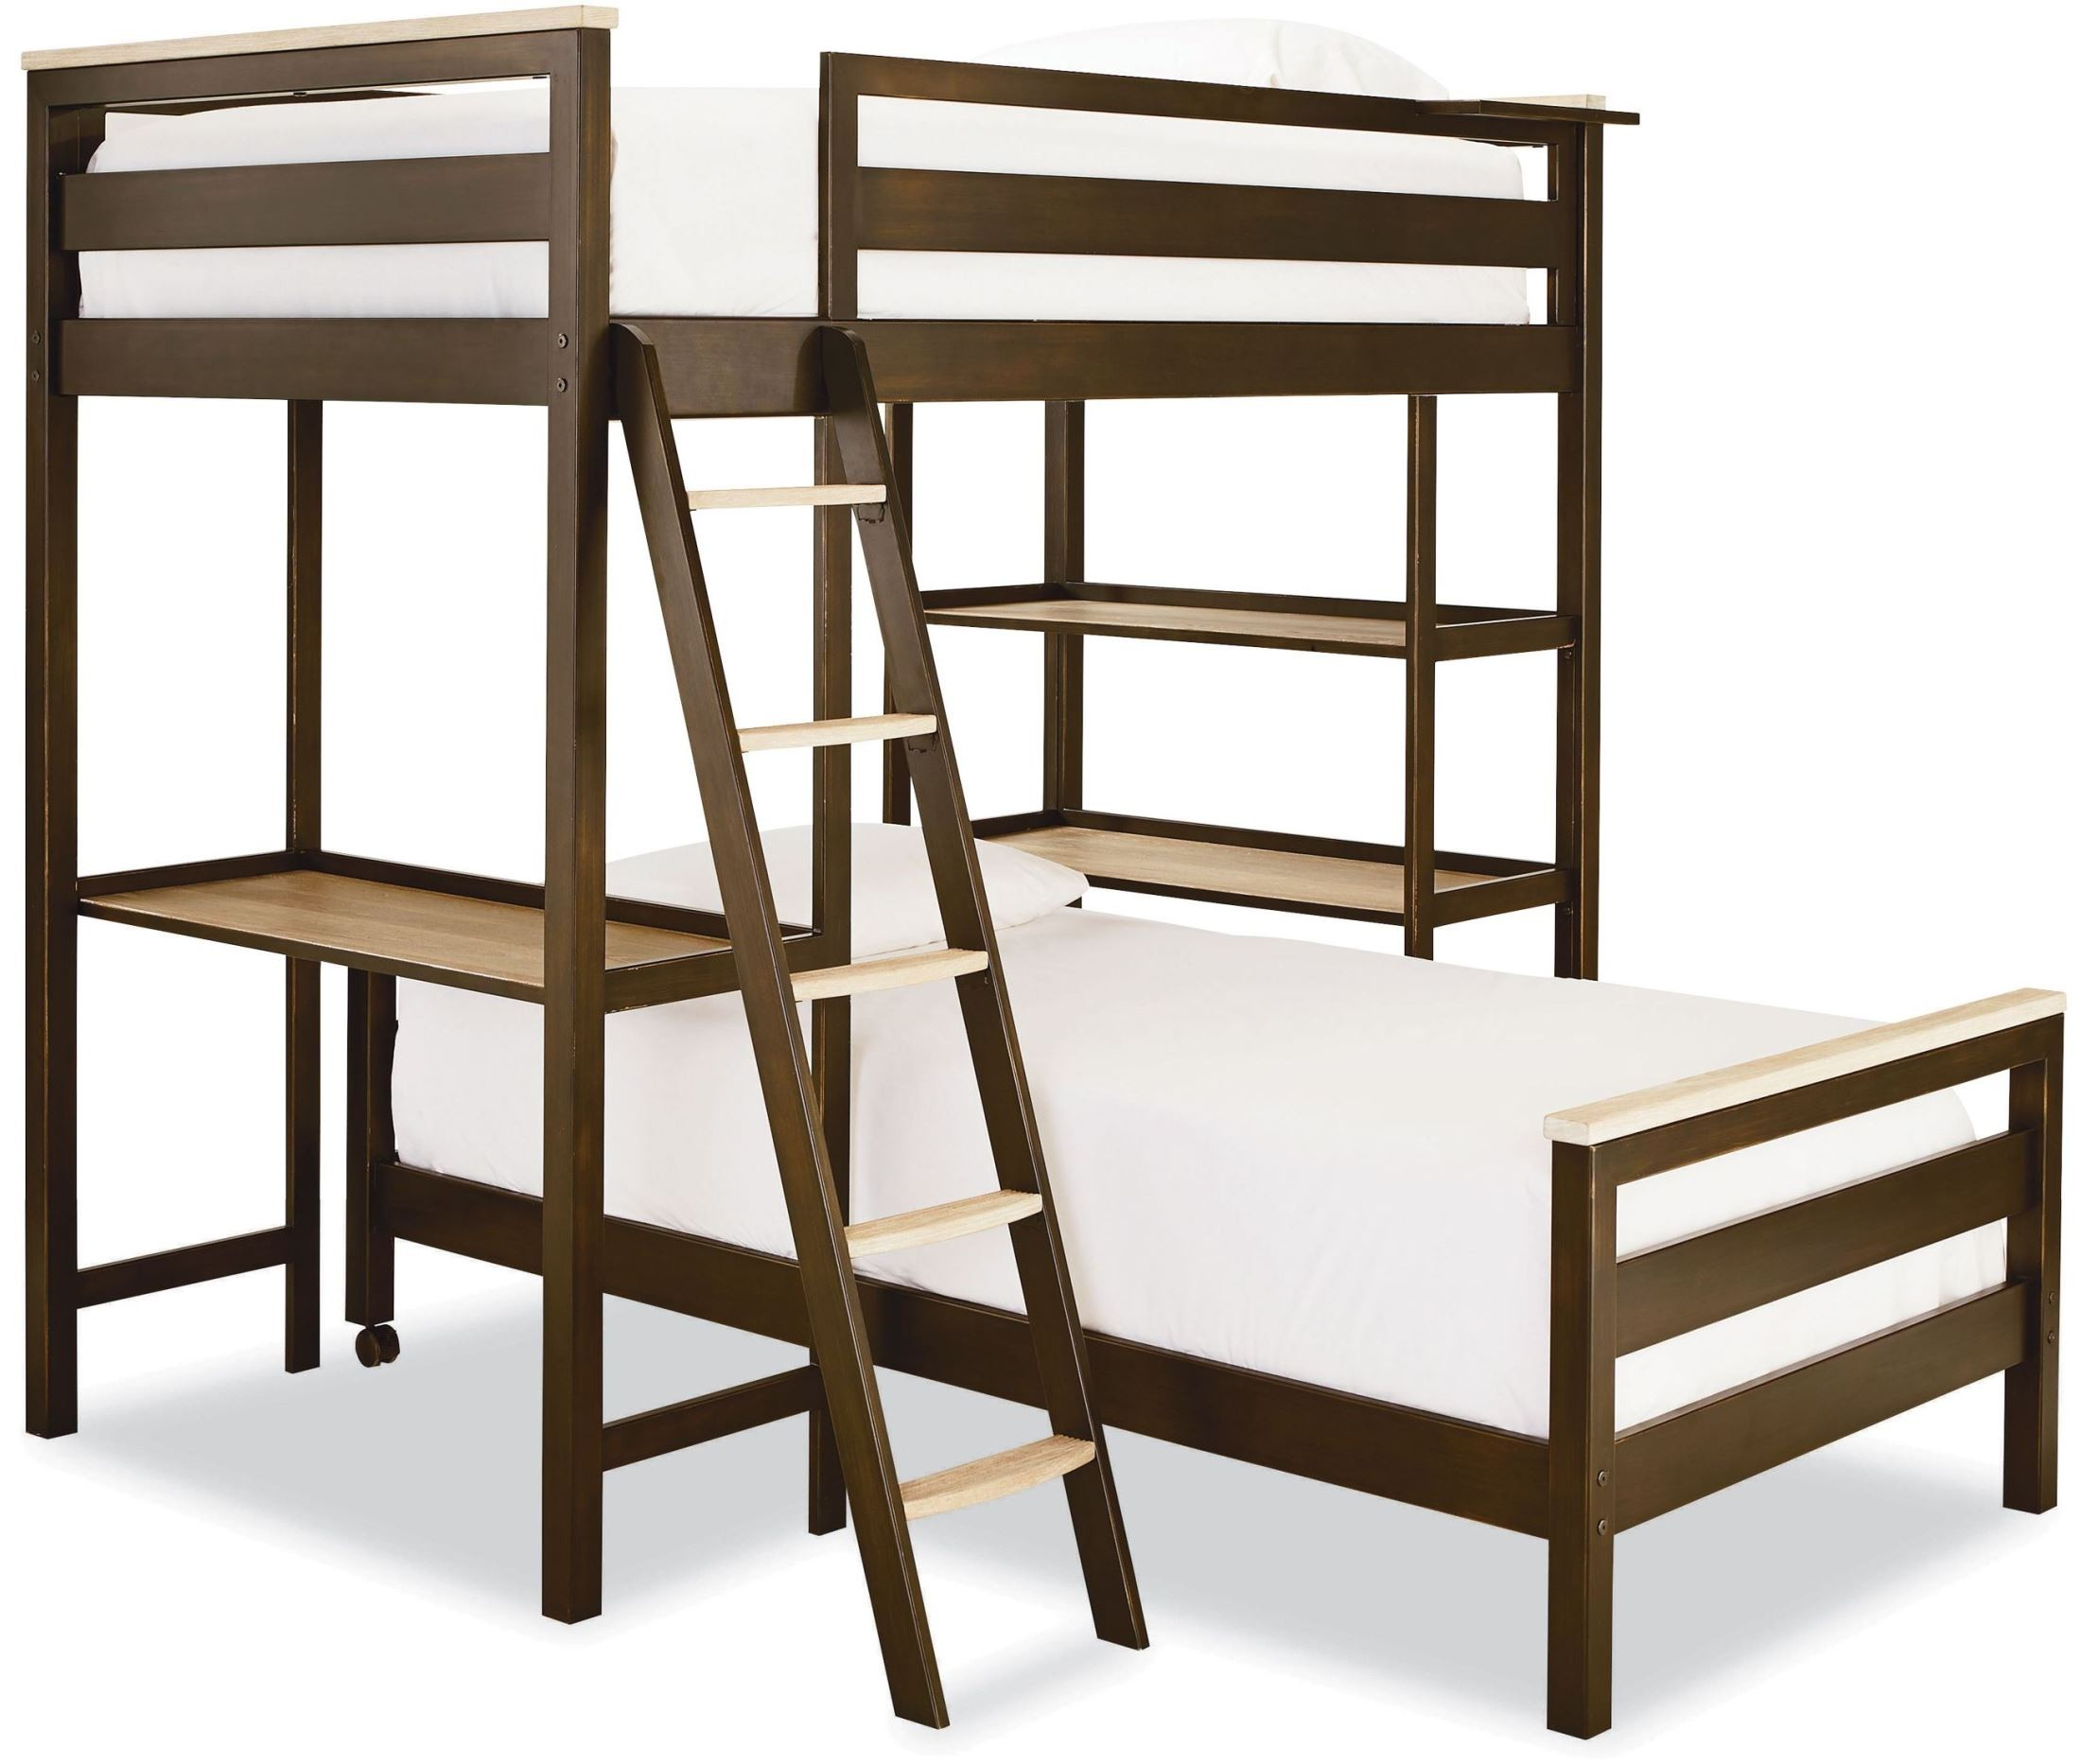 myroom parchment and gray twin metal loft bunk bed from. Black Bedroom Furniture Sets. Home Design Ideas